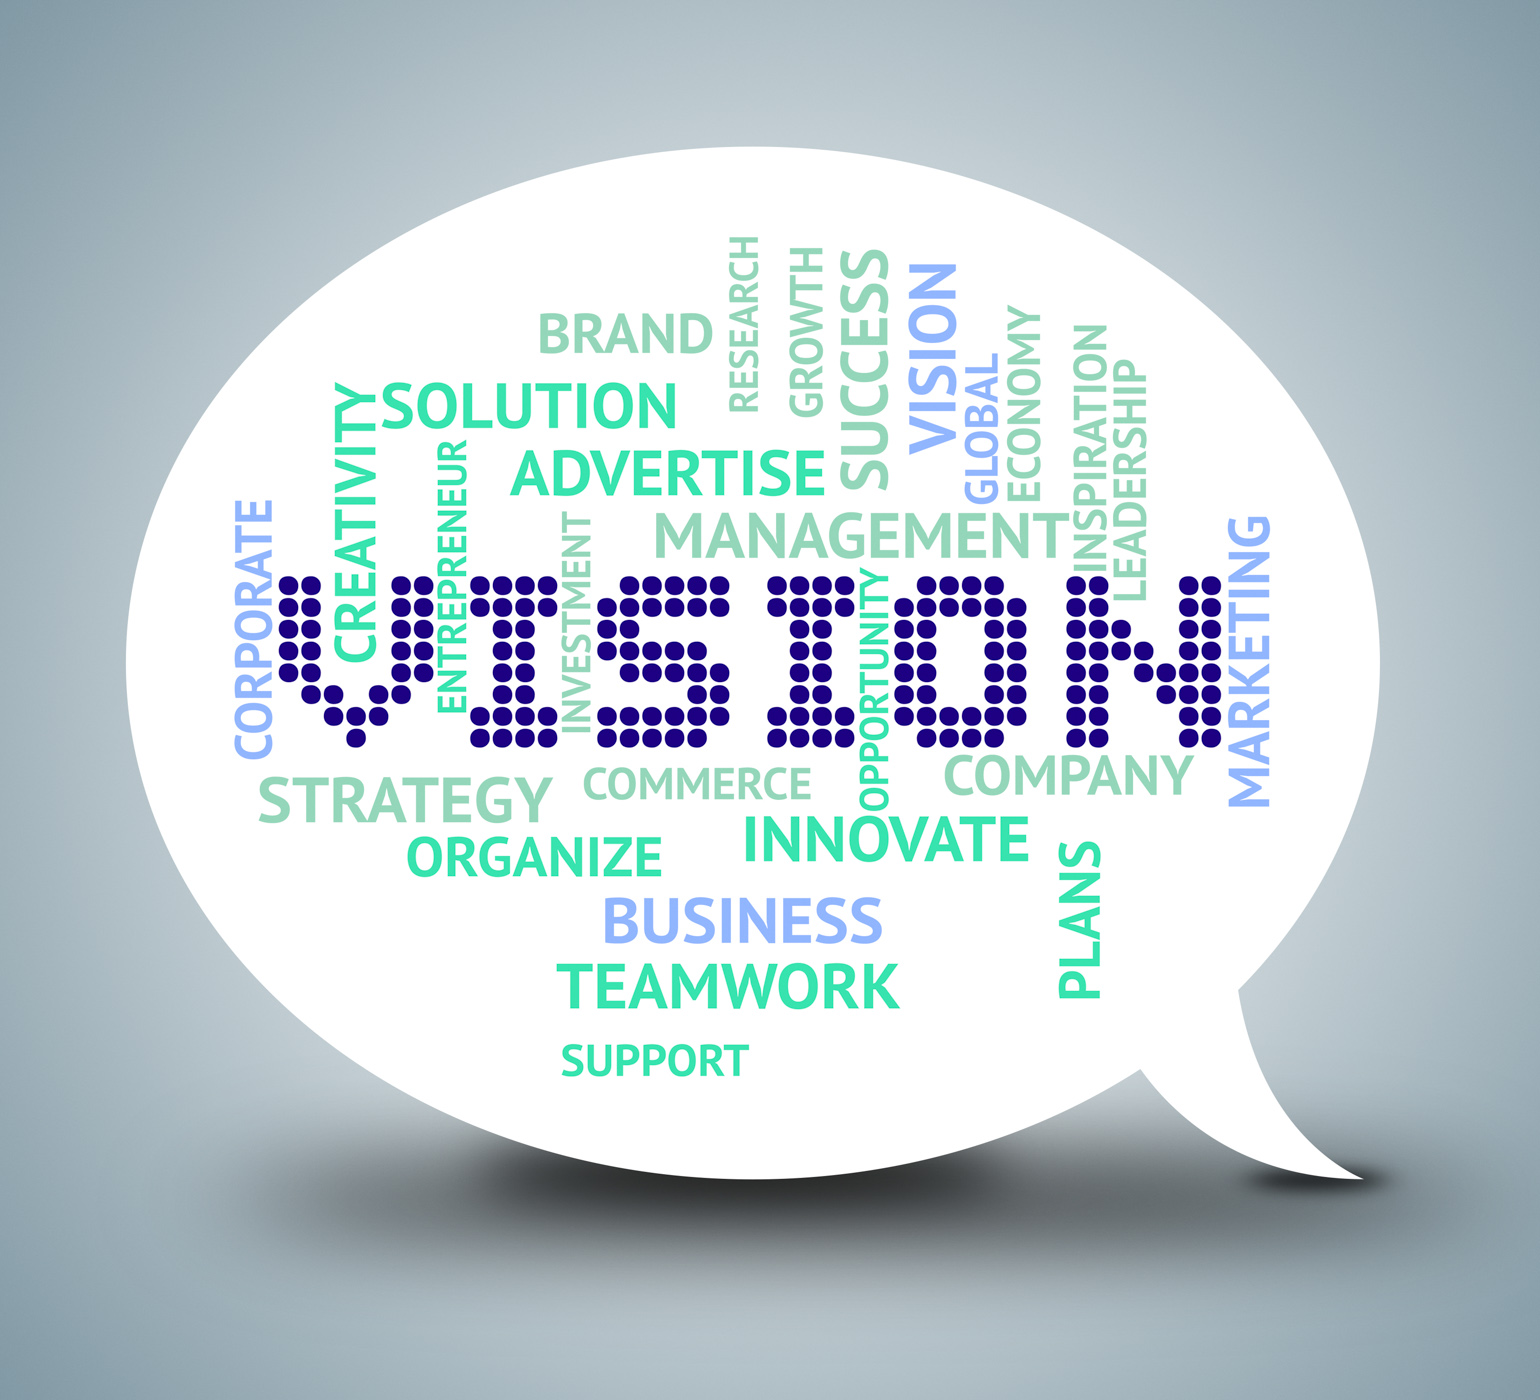 Vision Bubble Shows Plan Speak And Aspire, Aim, Missions, Vision, Target, HQ Photo